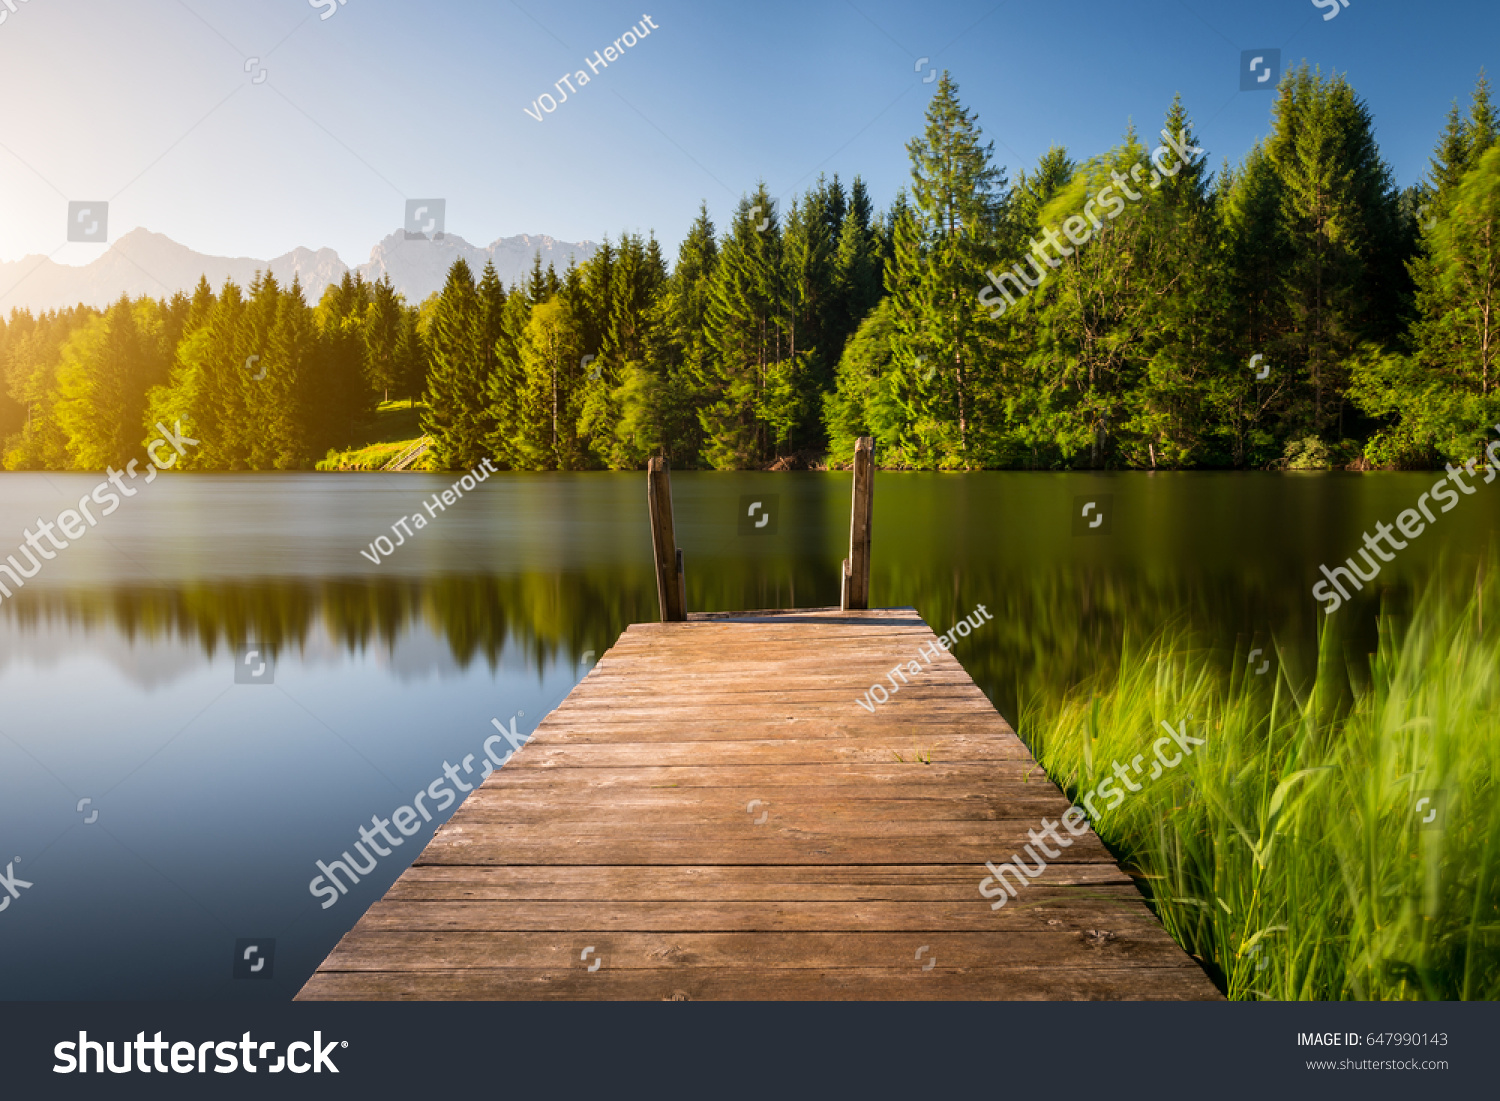 Idyllic view of the wooden pier in the lake with mountain scenery background. Alps in the early morning. #647990143